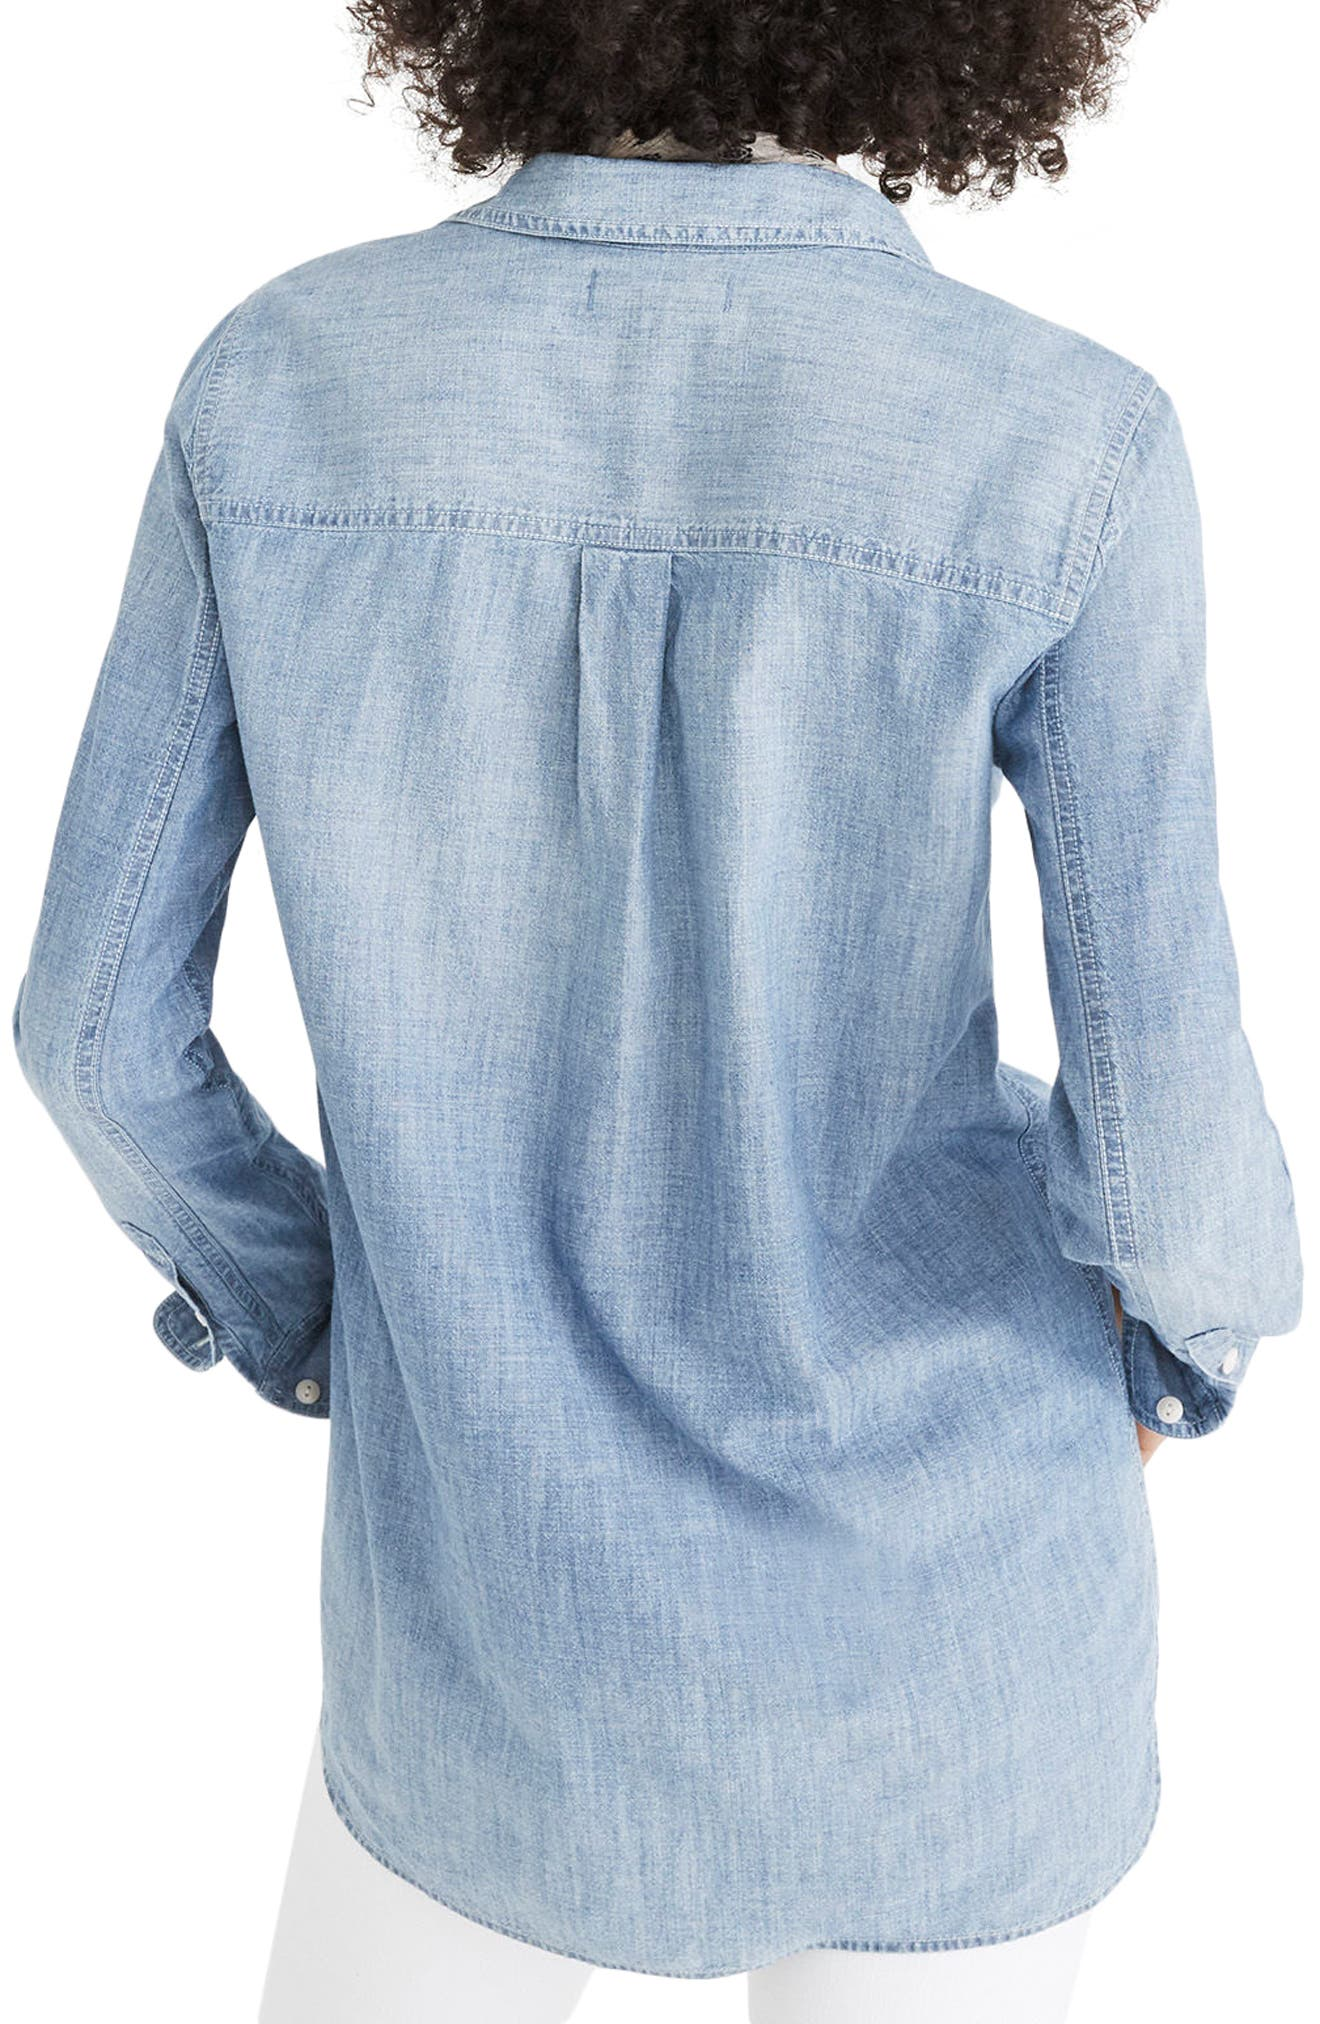 Classic Ex-Boyfriend Chambray Shirt,                             Alternate thumbnail 2, color,                             400